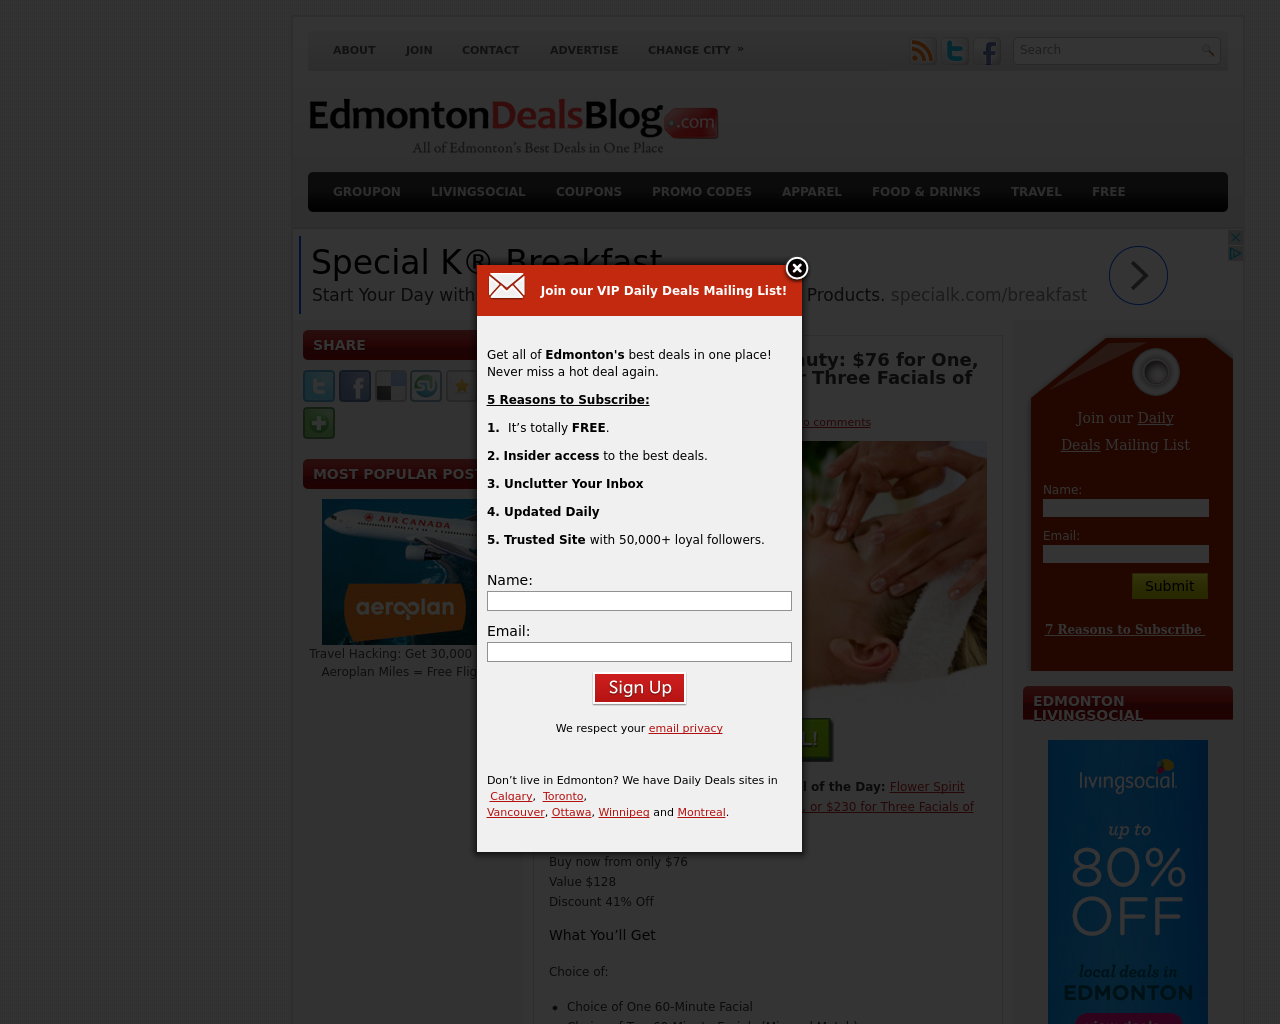 Edmonton-Deals-Blog-Advertising-Reviews-Pricing